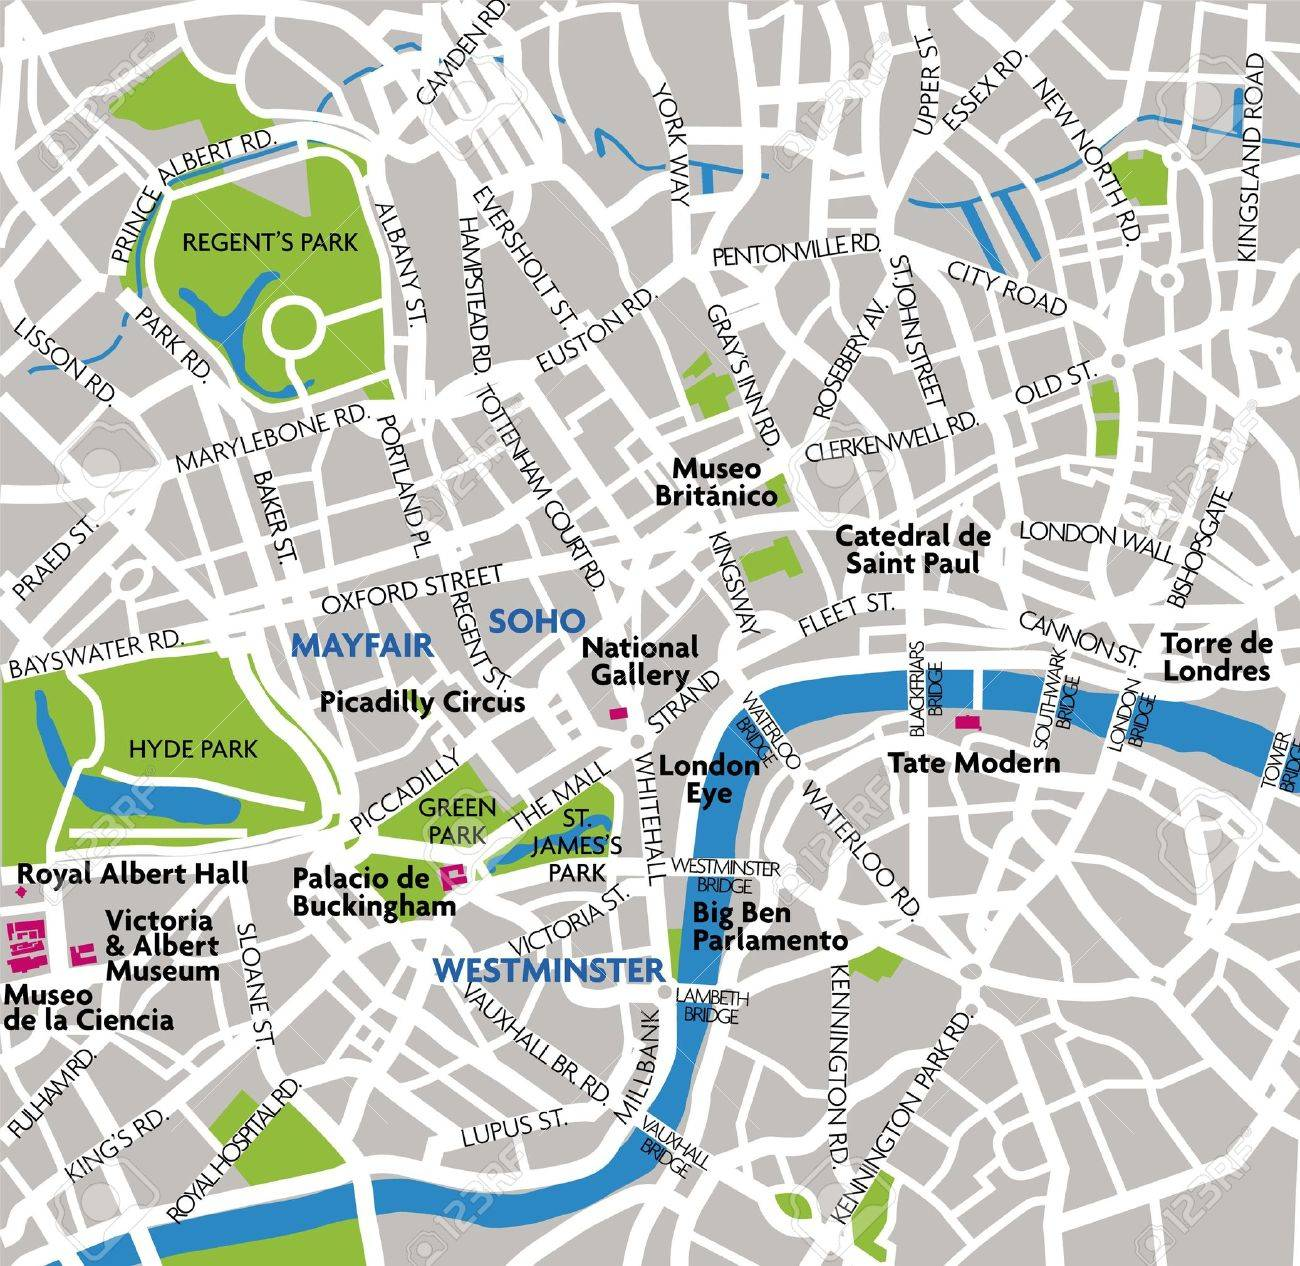 Free London Map.London Map Royalty Free Cliparts Vectors And Stock Illustration